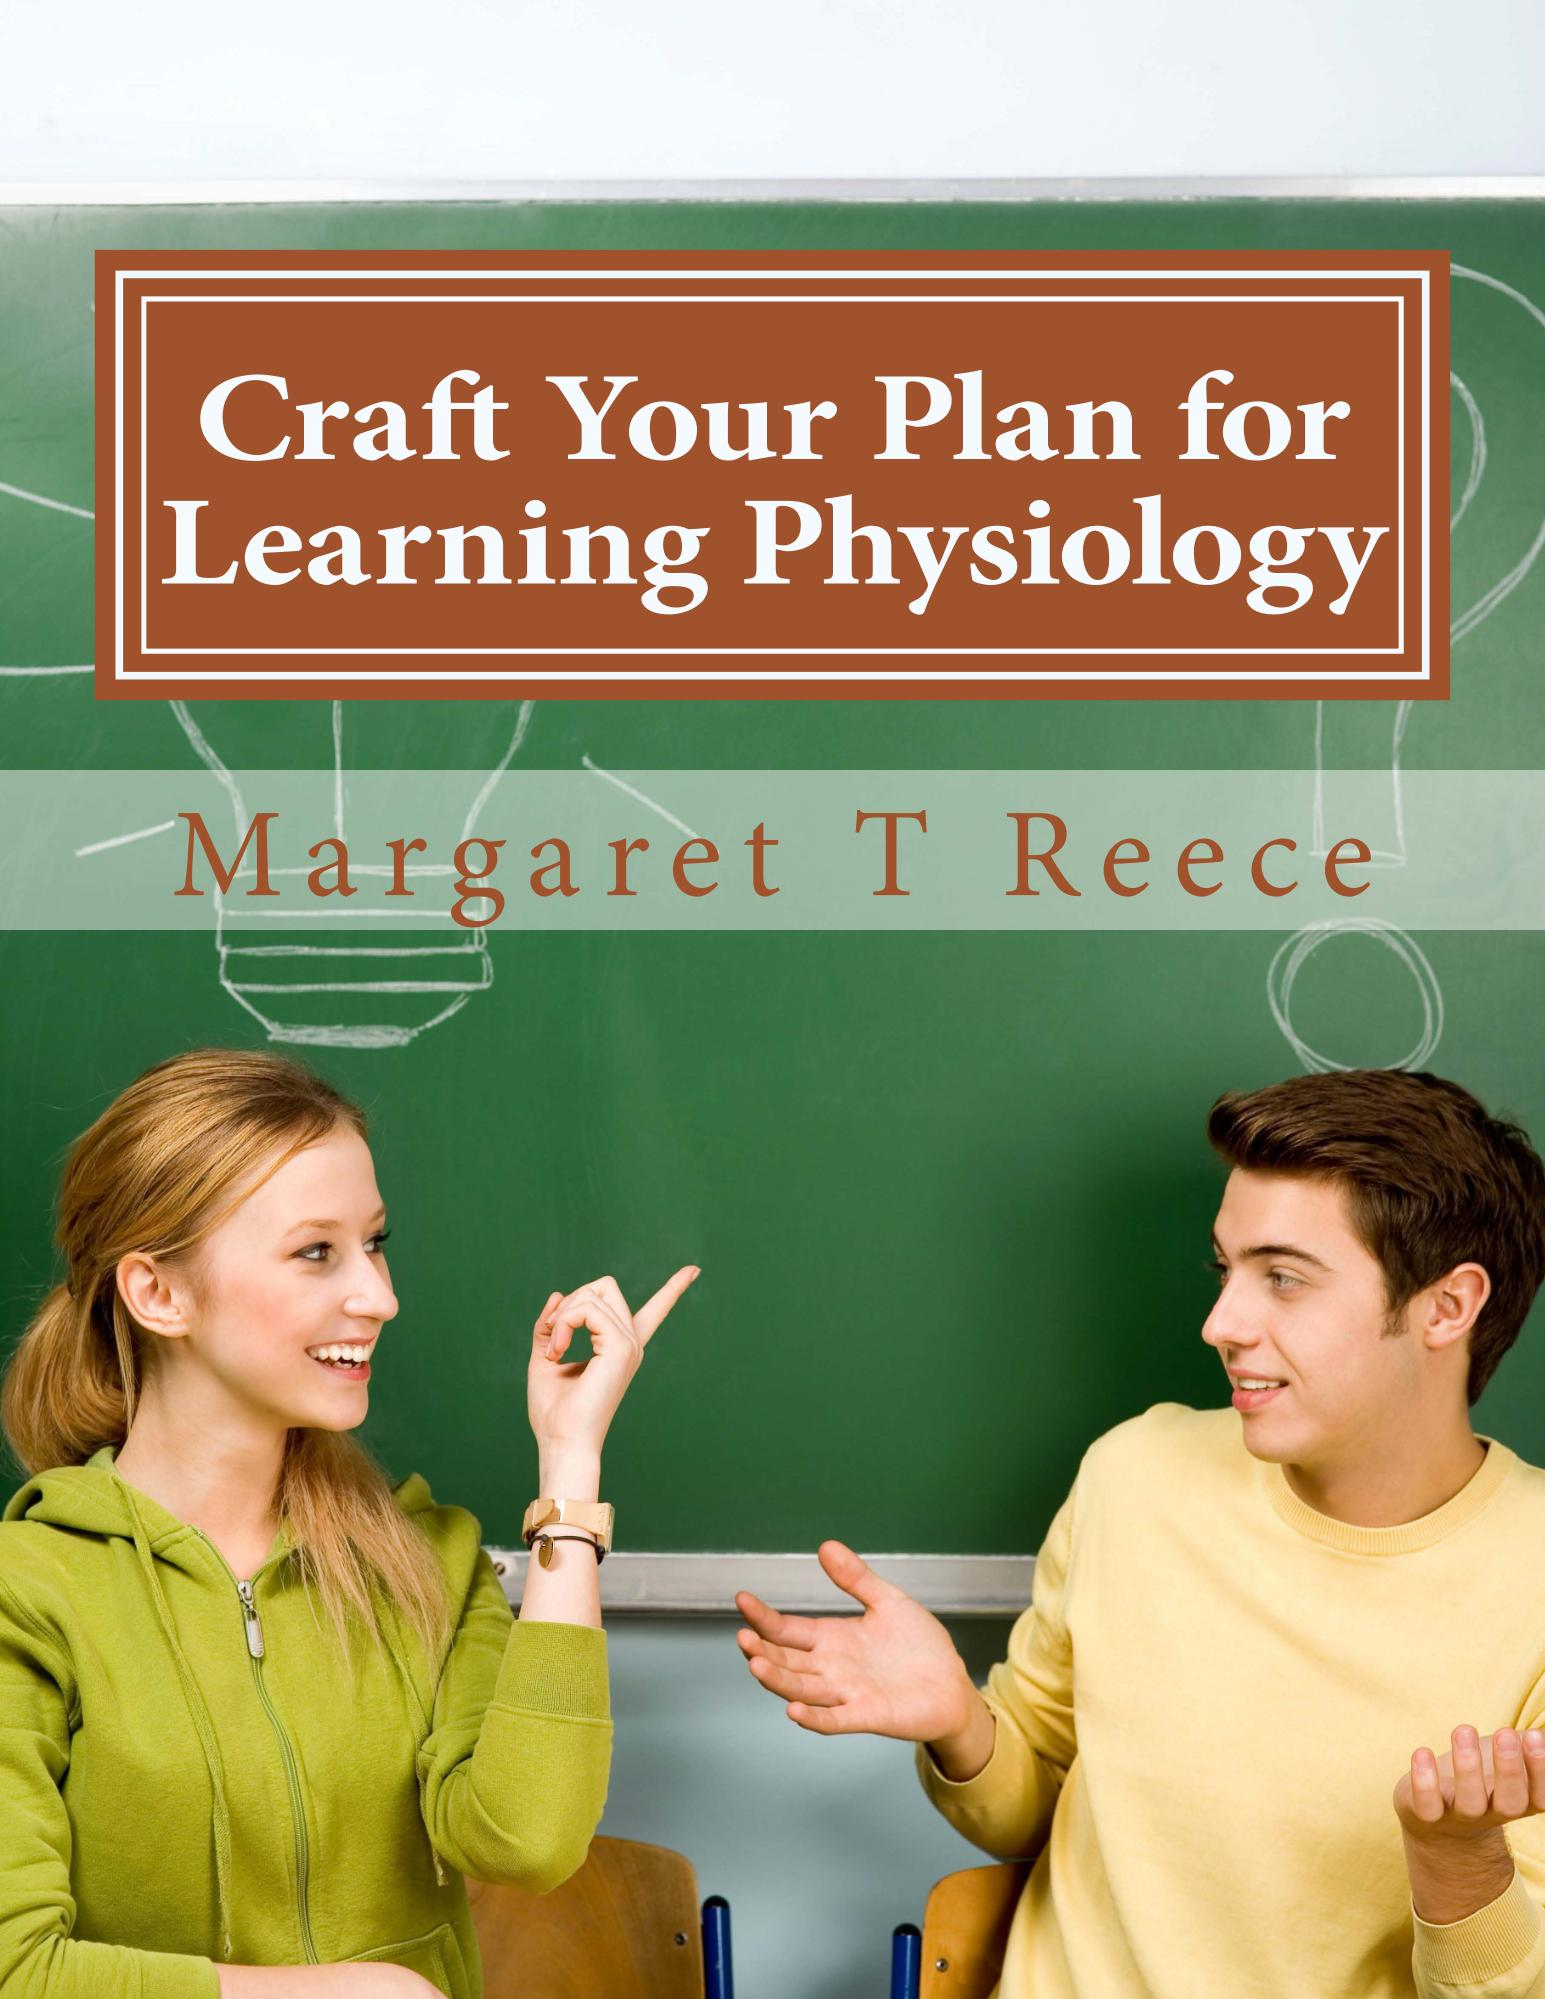 Step by step plan for learning physiology